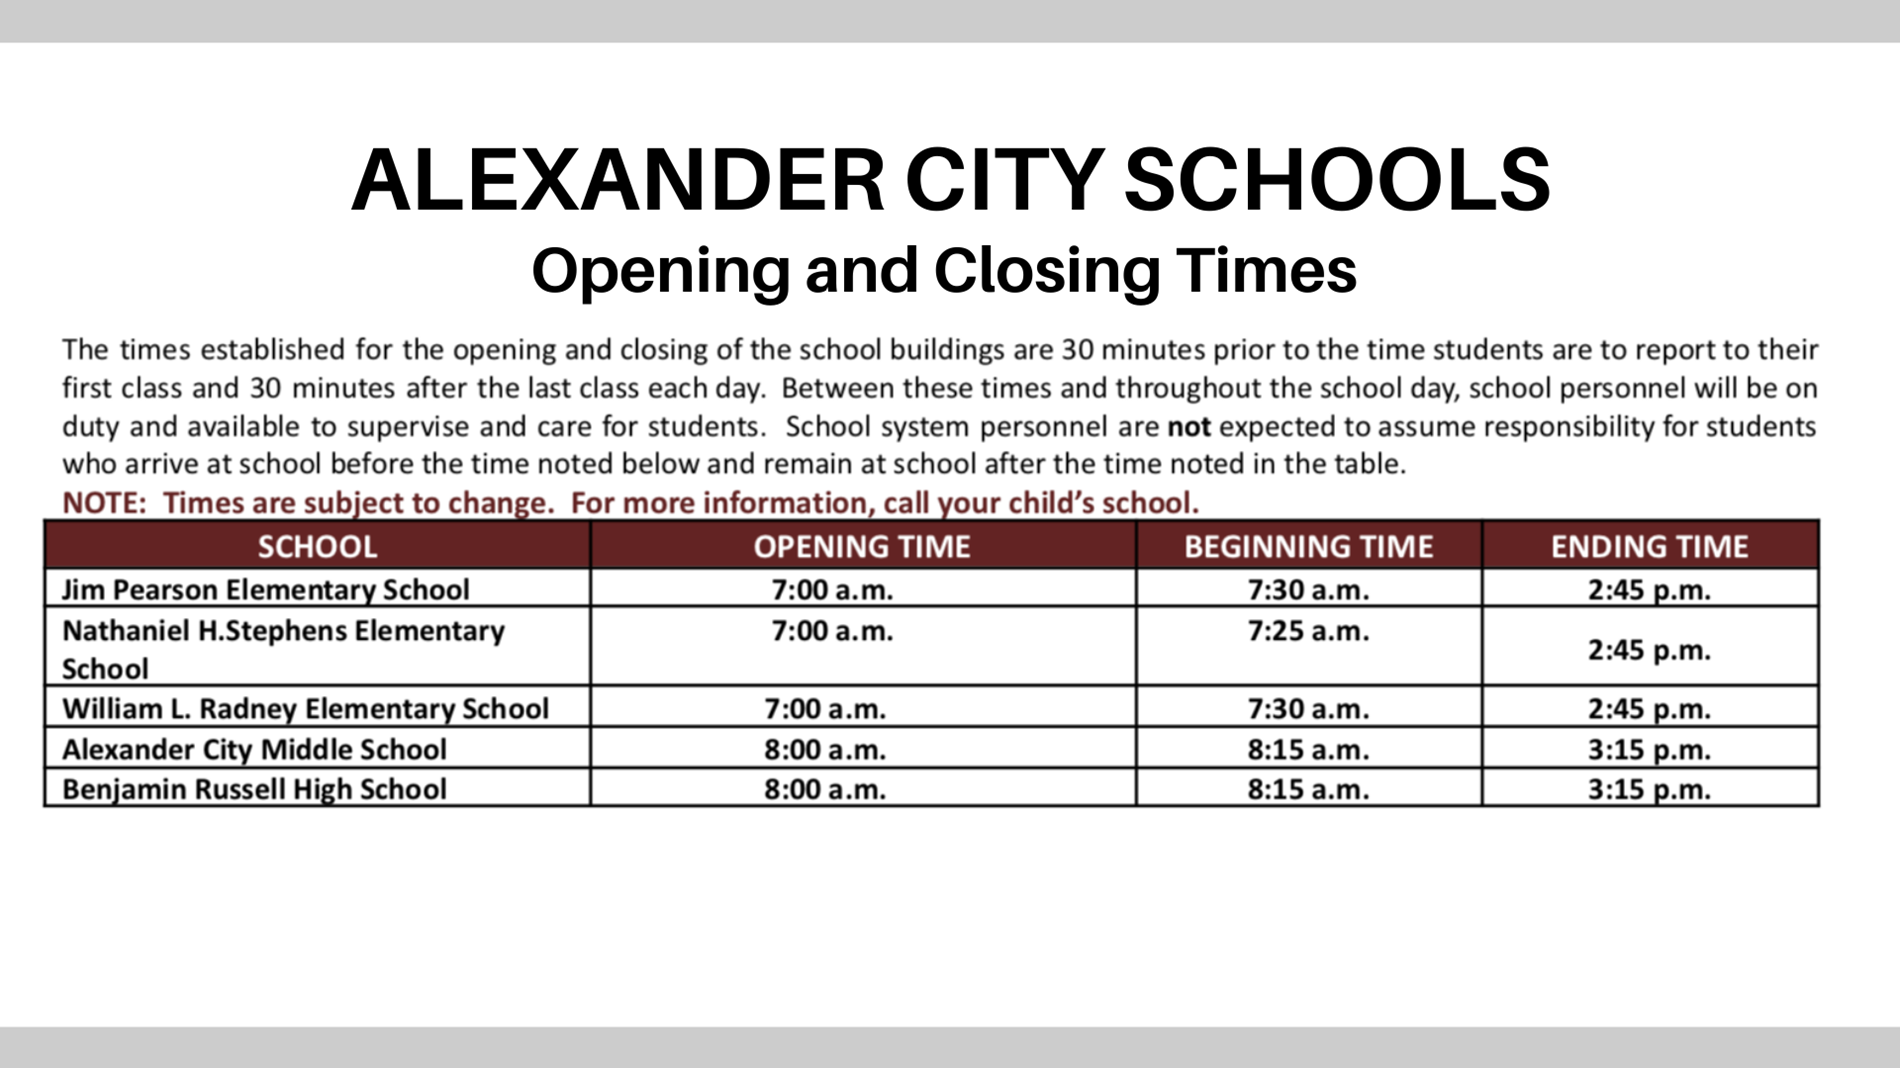 School Opening and Closing Times